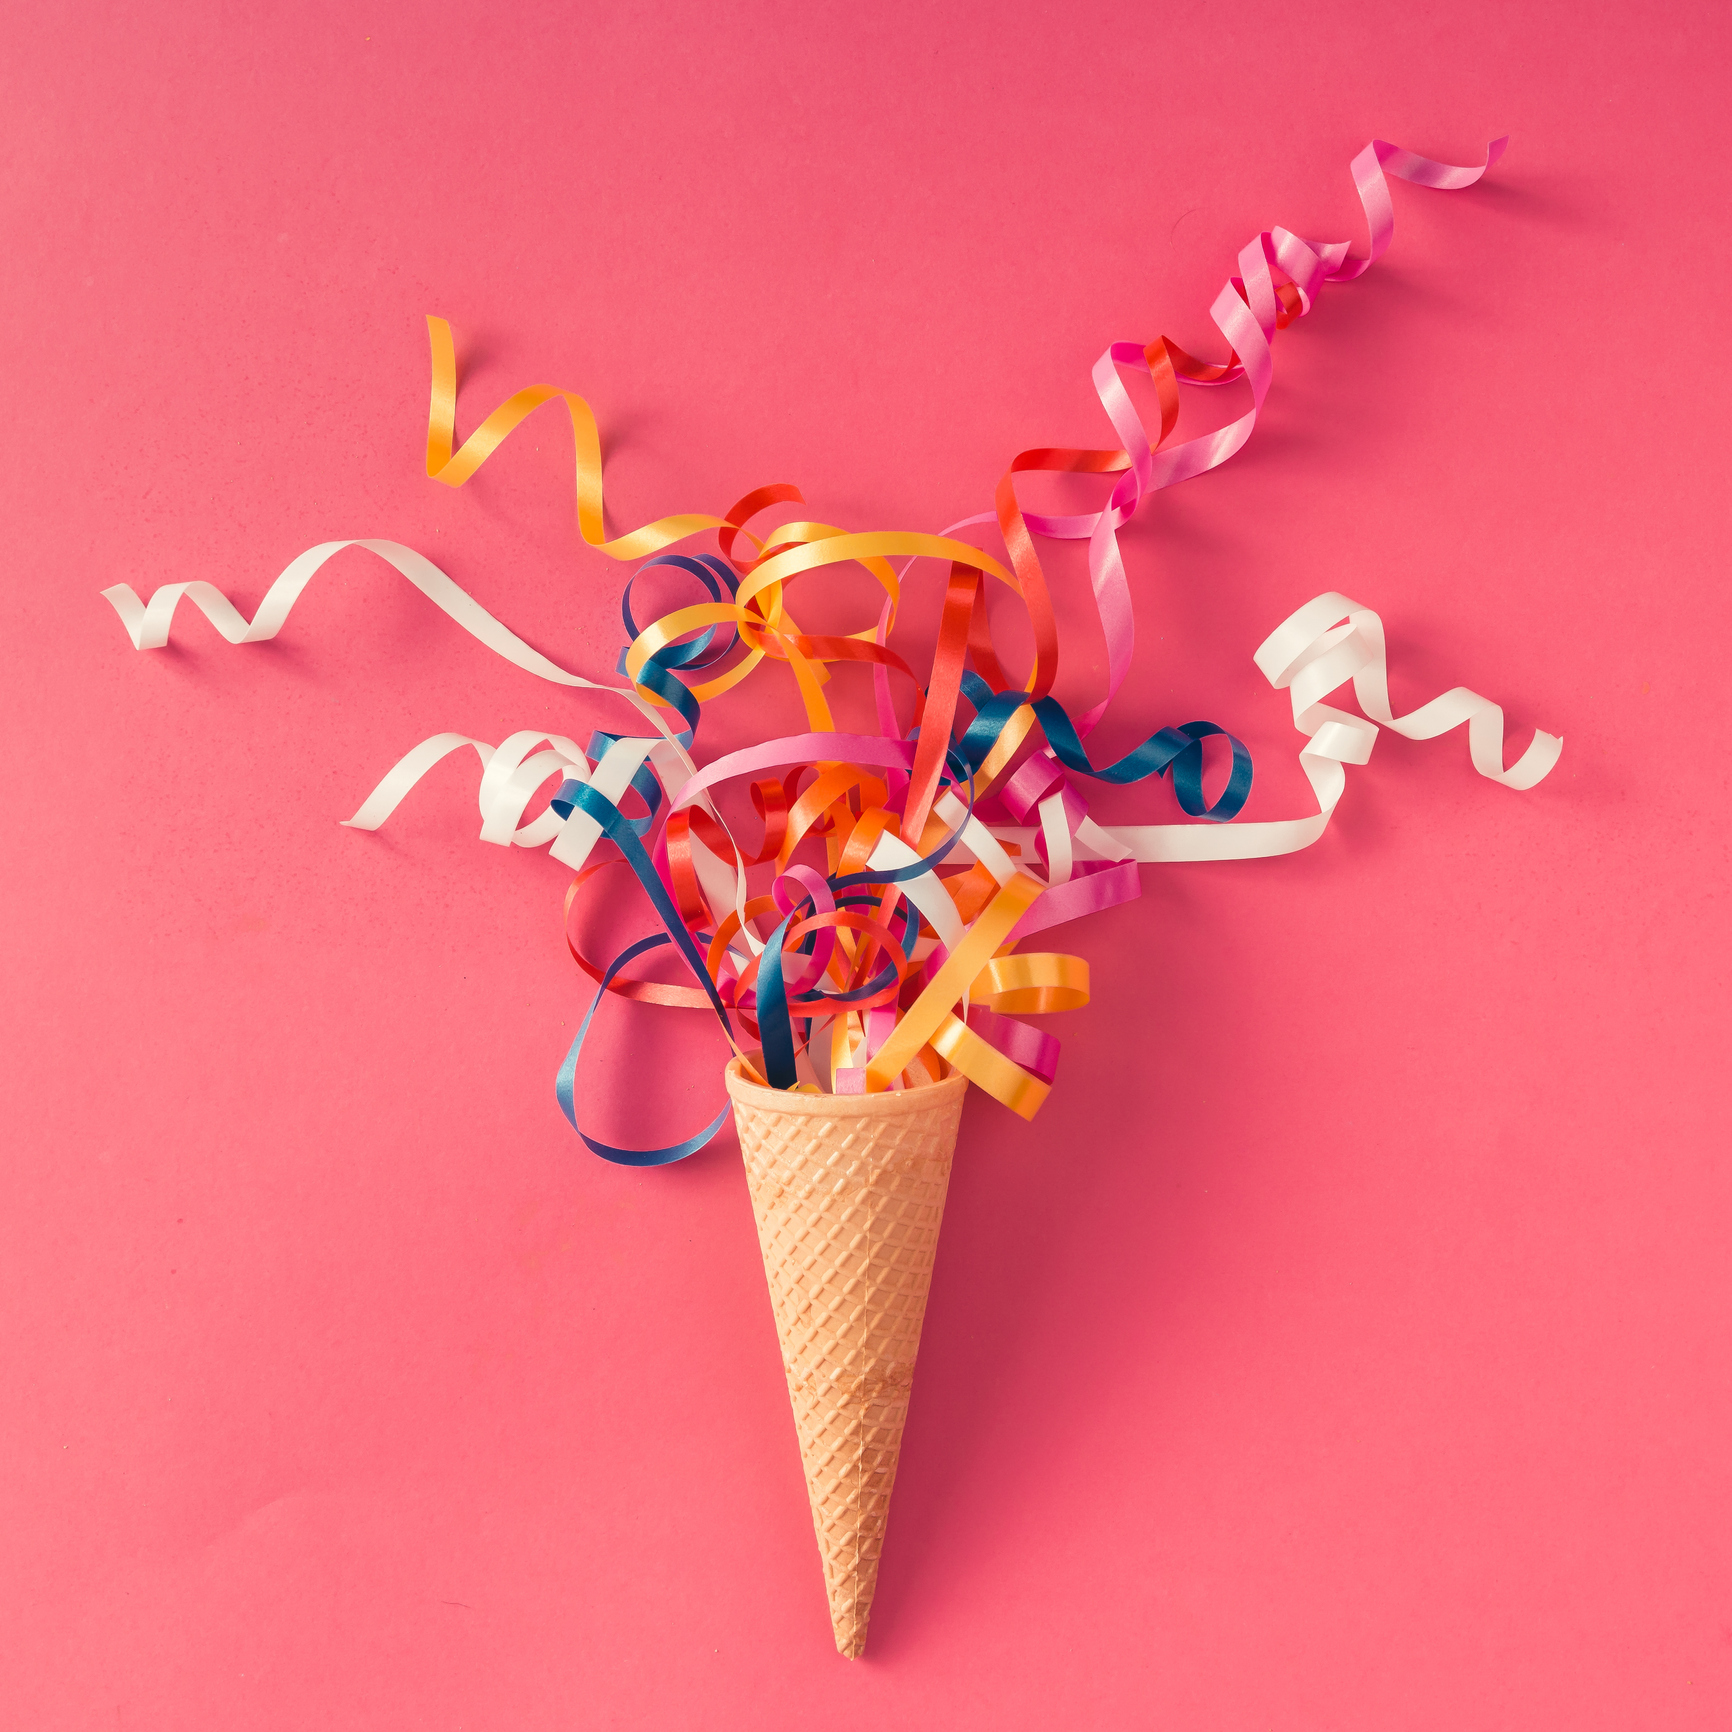 Ribbons coming out of an ice cream cone on a pink background